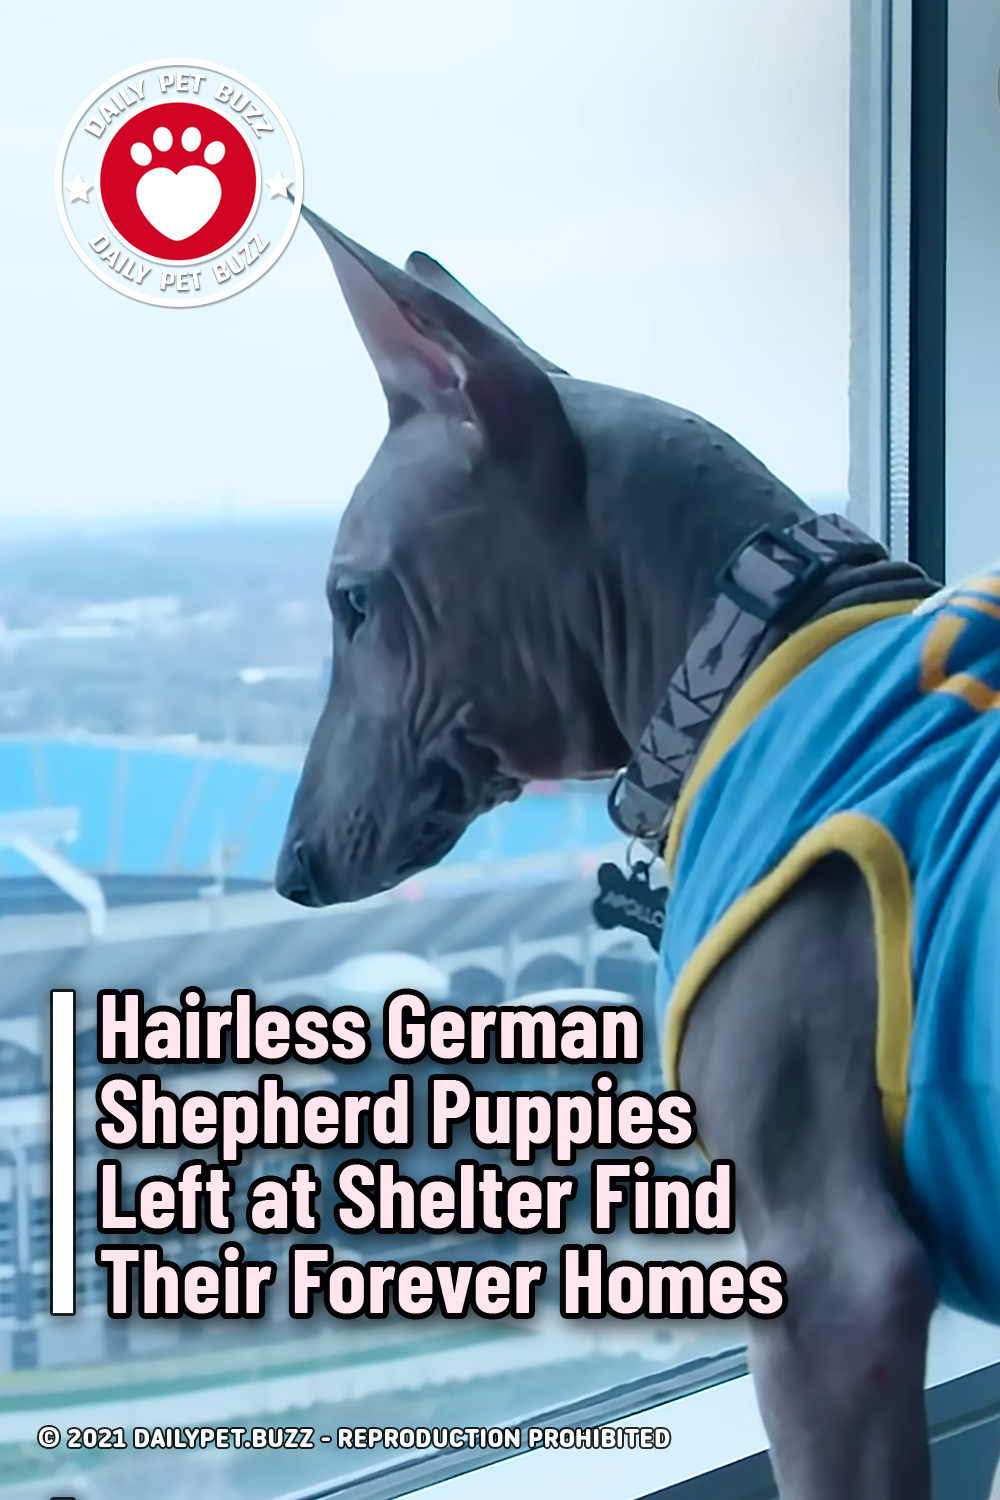 Hairless German Shepherd Puppies Left at Shelter Find Their Forever Homes